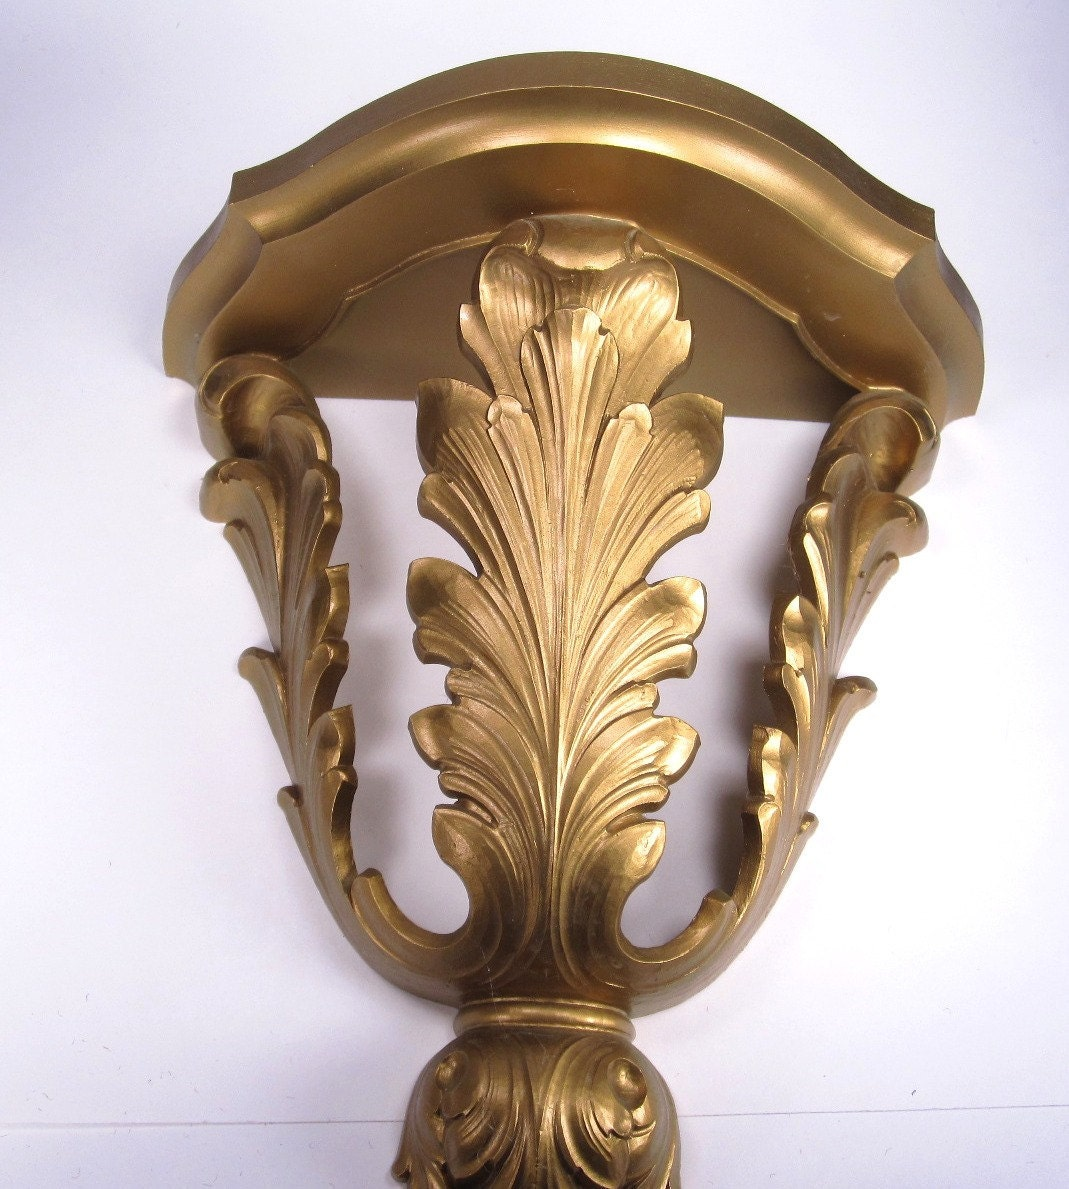 Vintage Homco 1970s Wall Shelf or Sconce Gold Wall Decor